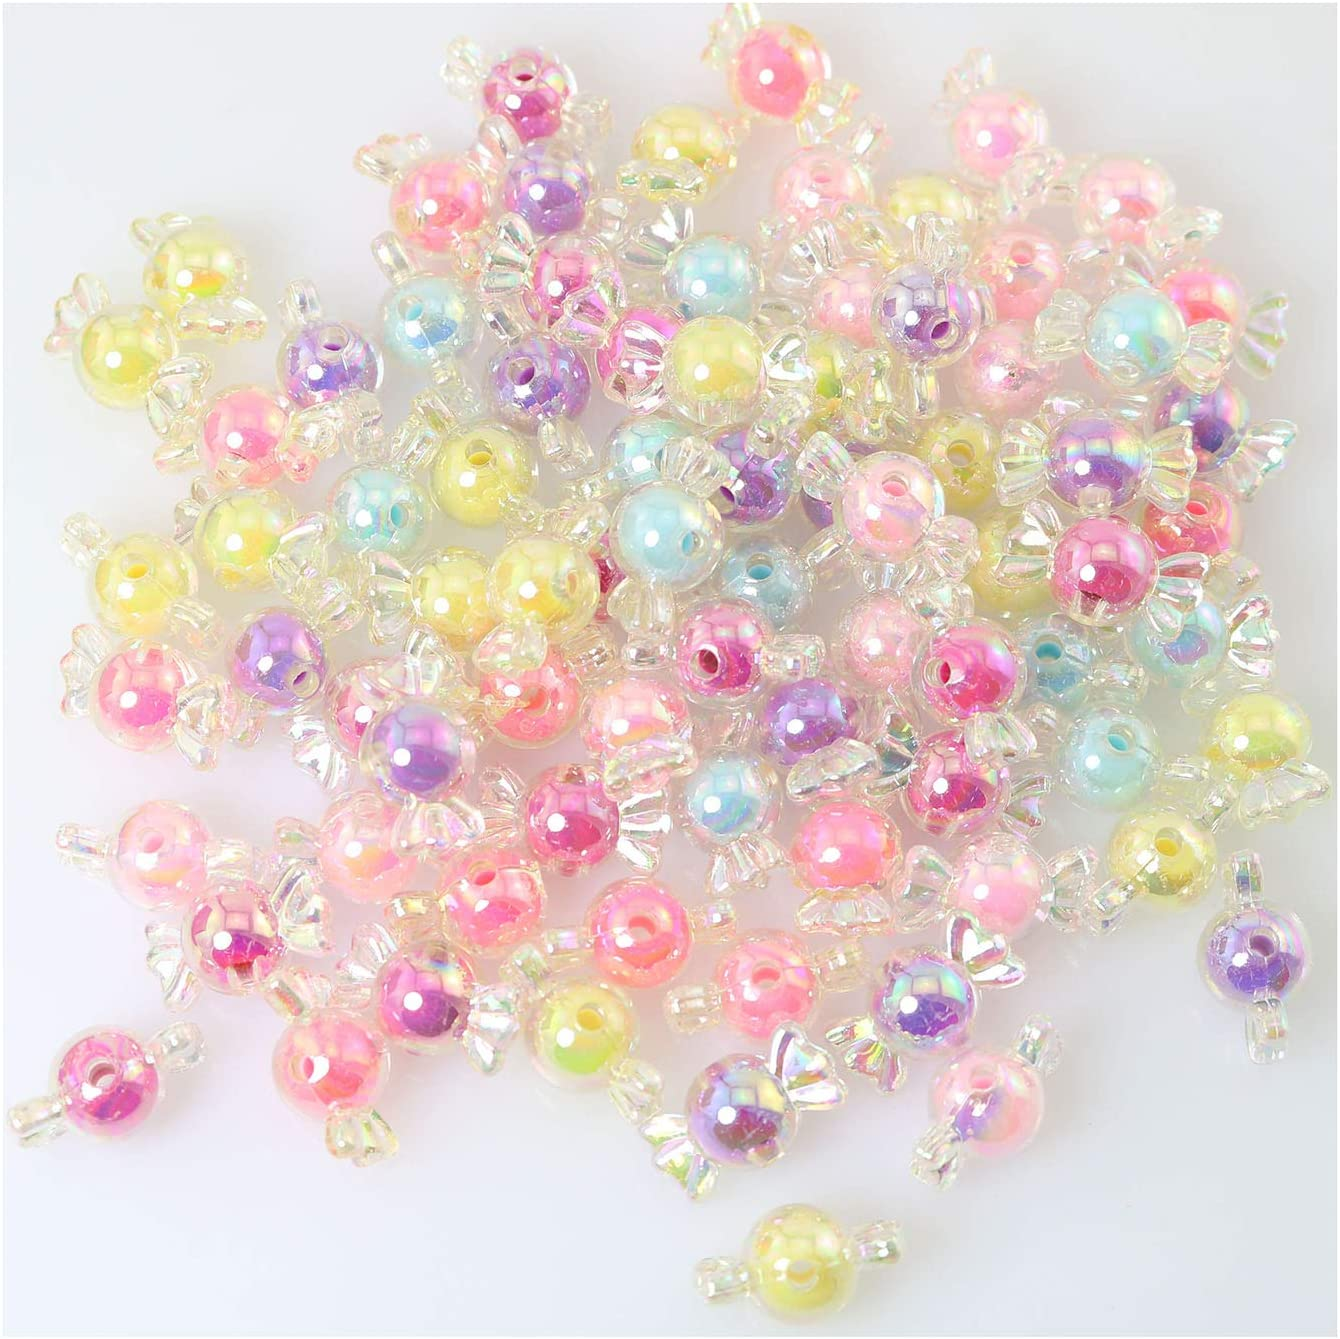 Tegg 80PCS Colorful Beautiful Candy Shaped Acrylic Charm Beads for Chain Bracelet Necklace Jewelry DIY Craft